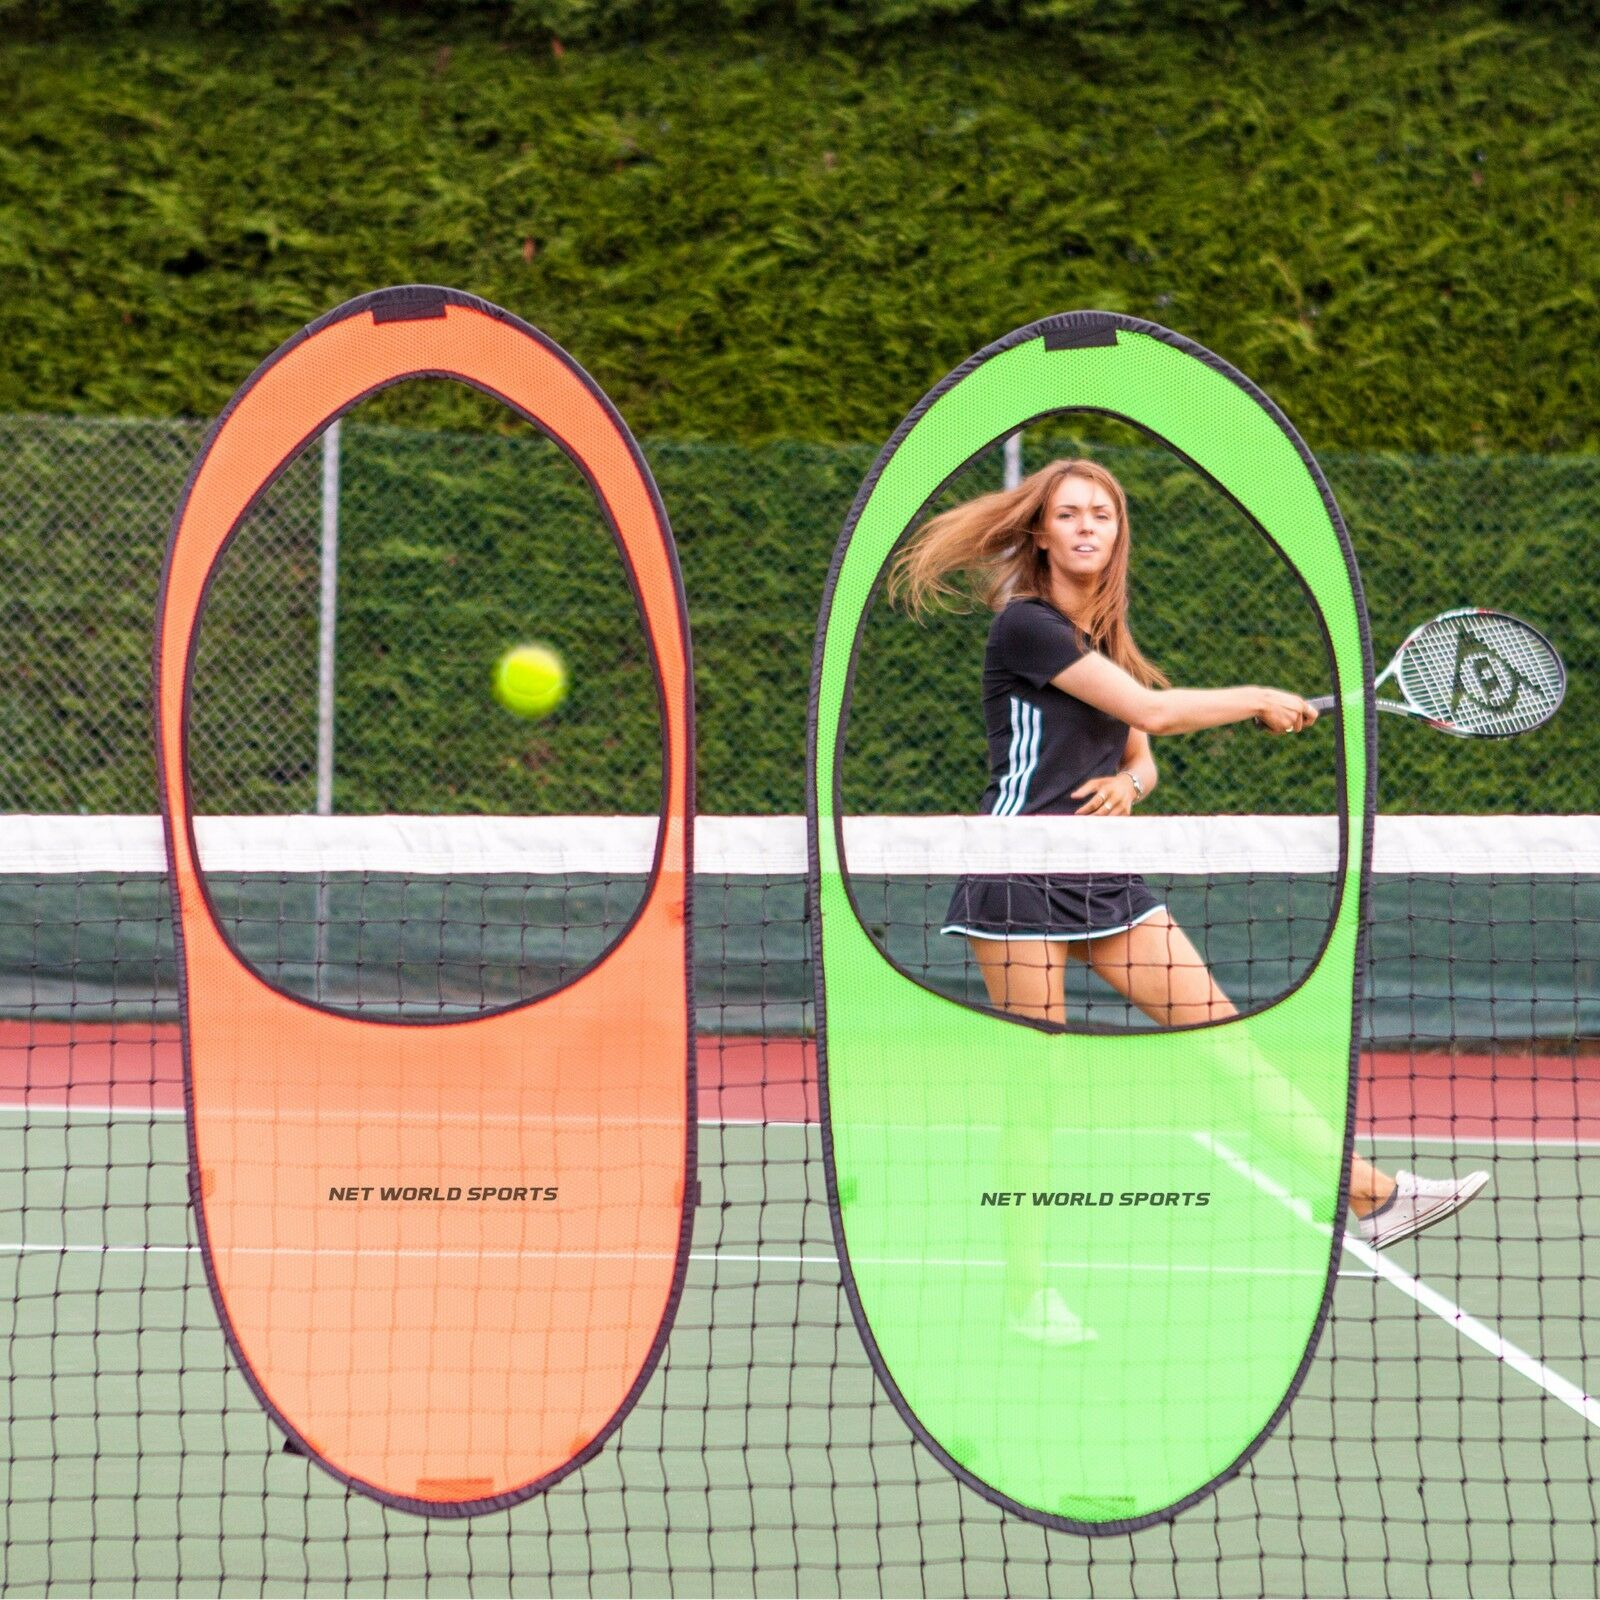 Portable Tennis Net Targets - Tennis Groundstroke Accuracy Training Target